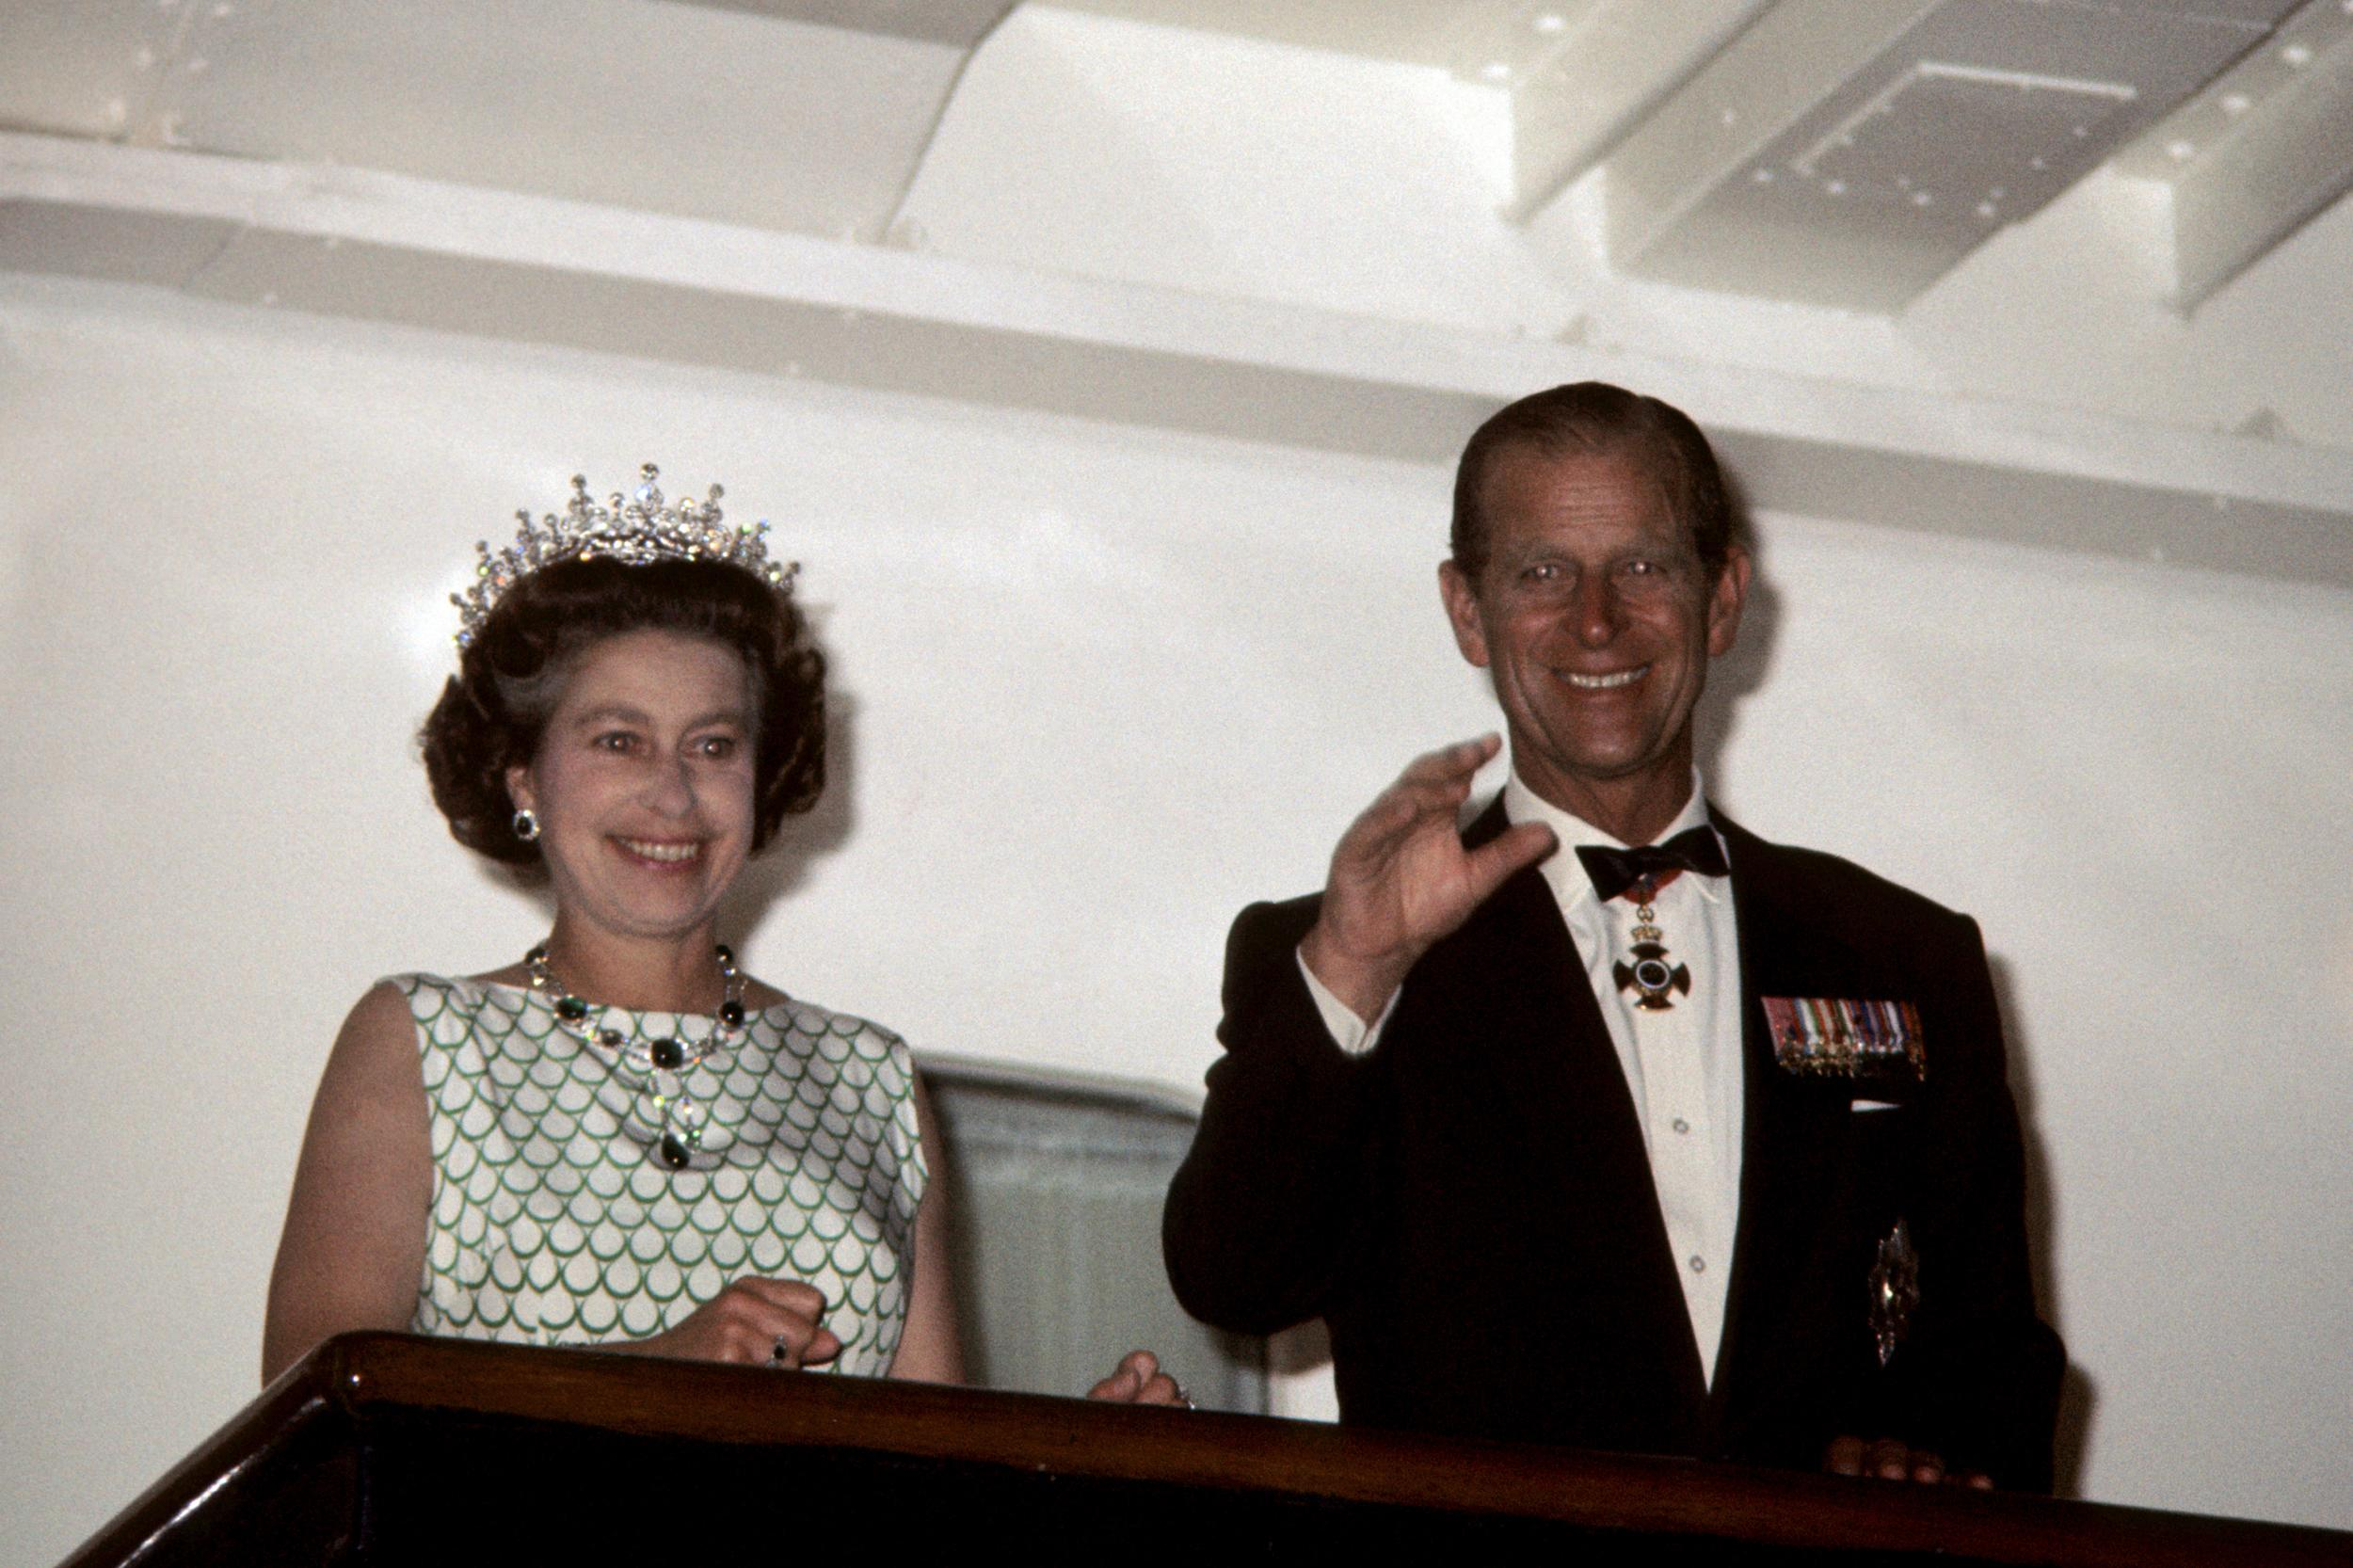 Queen Elizabeth II and the Duke of Edinburgh wave to the crowds from the Royal Yacht Britannia as it leaves Tortola in the Virgin Islands, during the Silver Jubilee tour of the Caribbean.